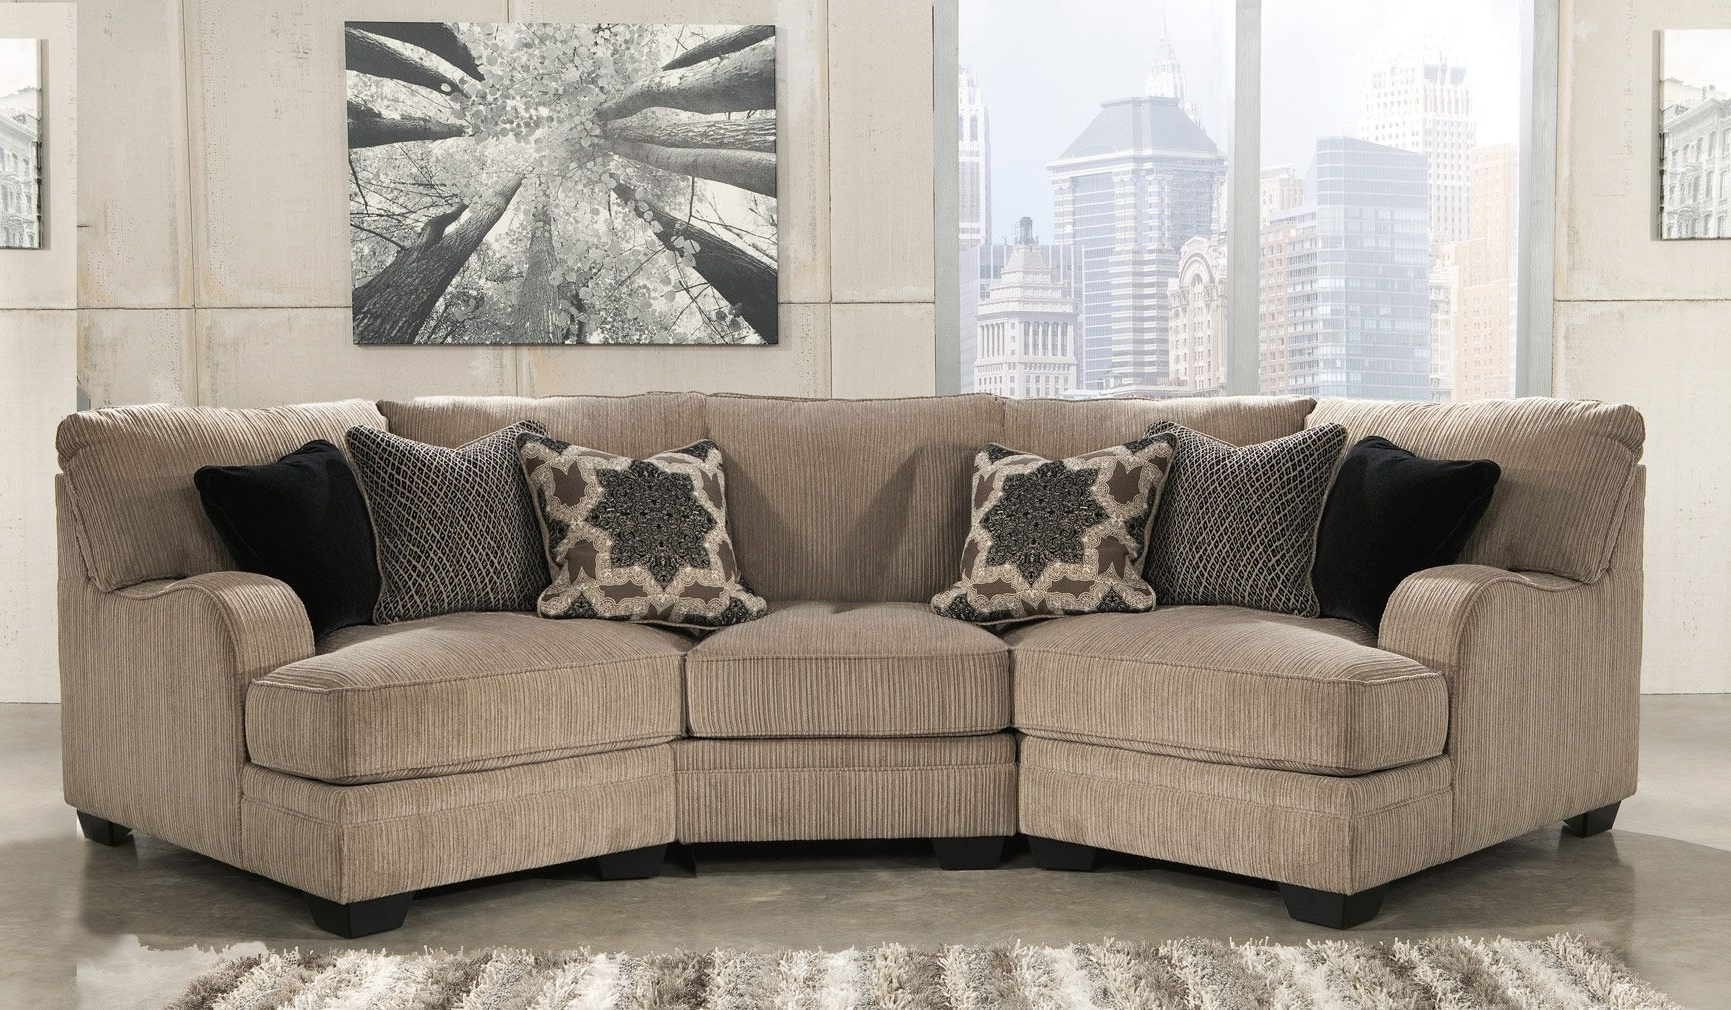 Newest Eau Claire Wi Sectional Sofas With Regard To Signature Designashley (View 12 of 20)